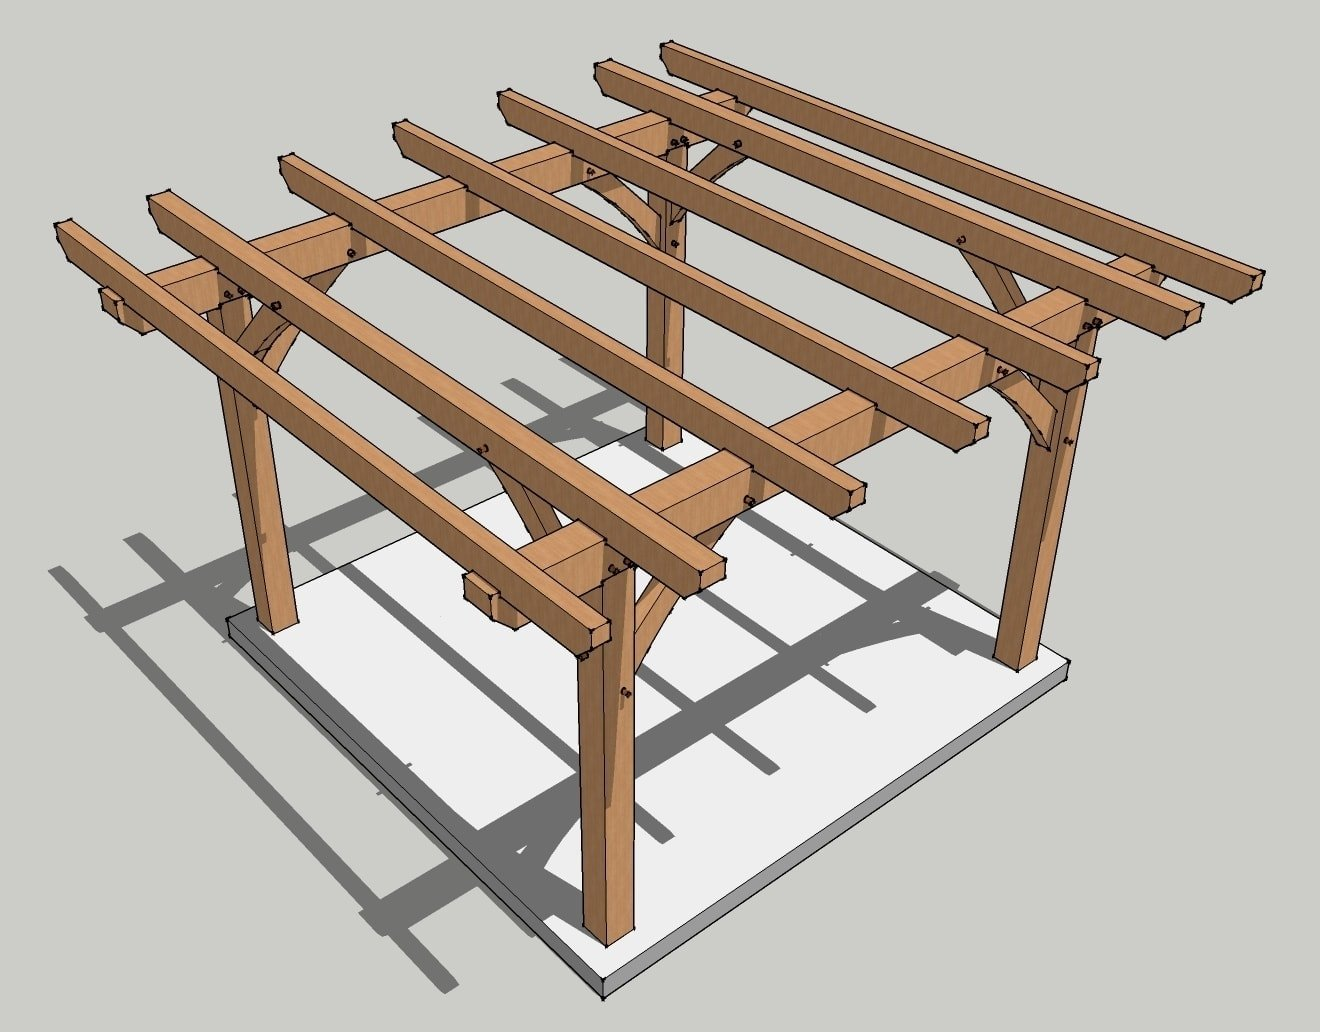 Simple House Floor Plans With Measurements 12x12 Timber Frame Pergola Plan Timber Frame Hq